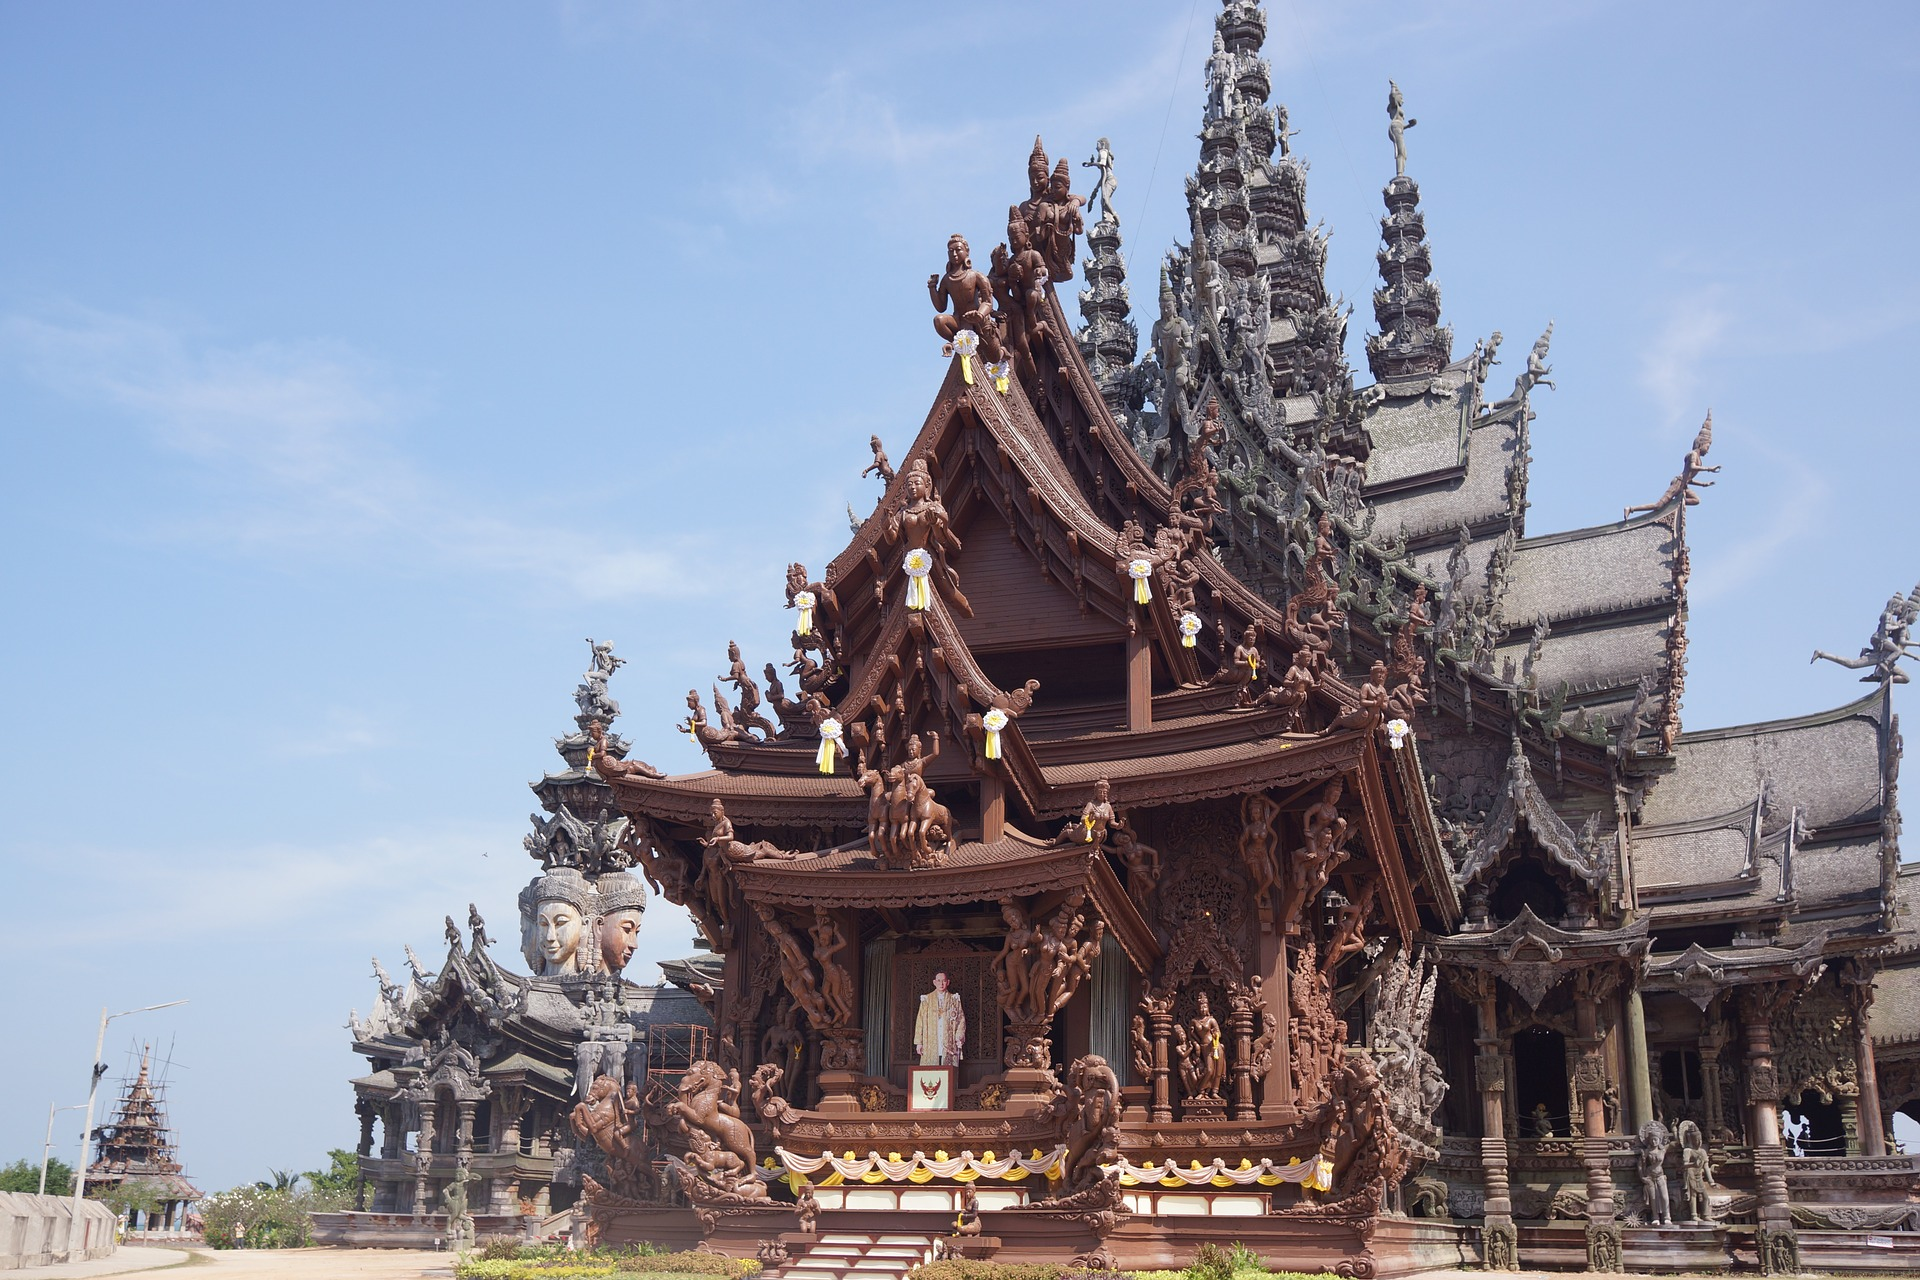 Sanctuary of Truth, Pattaya Thailand